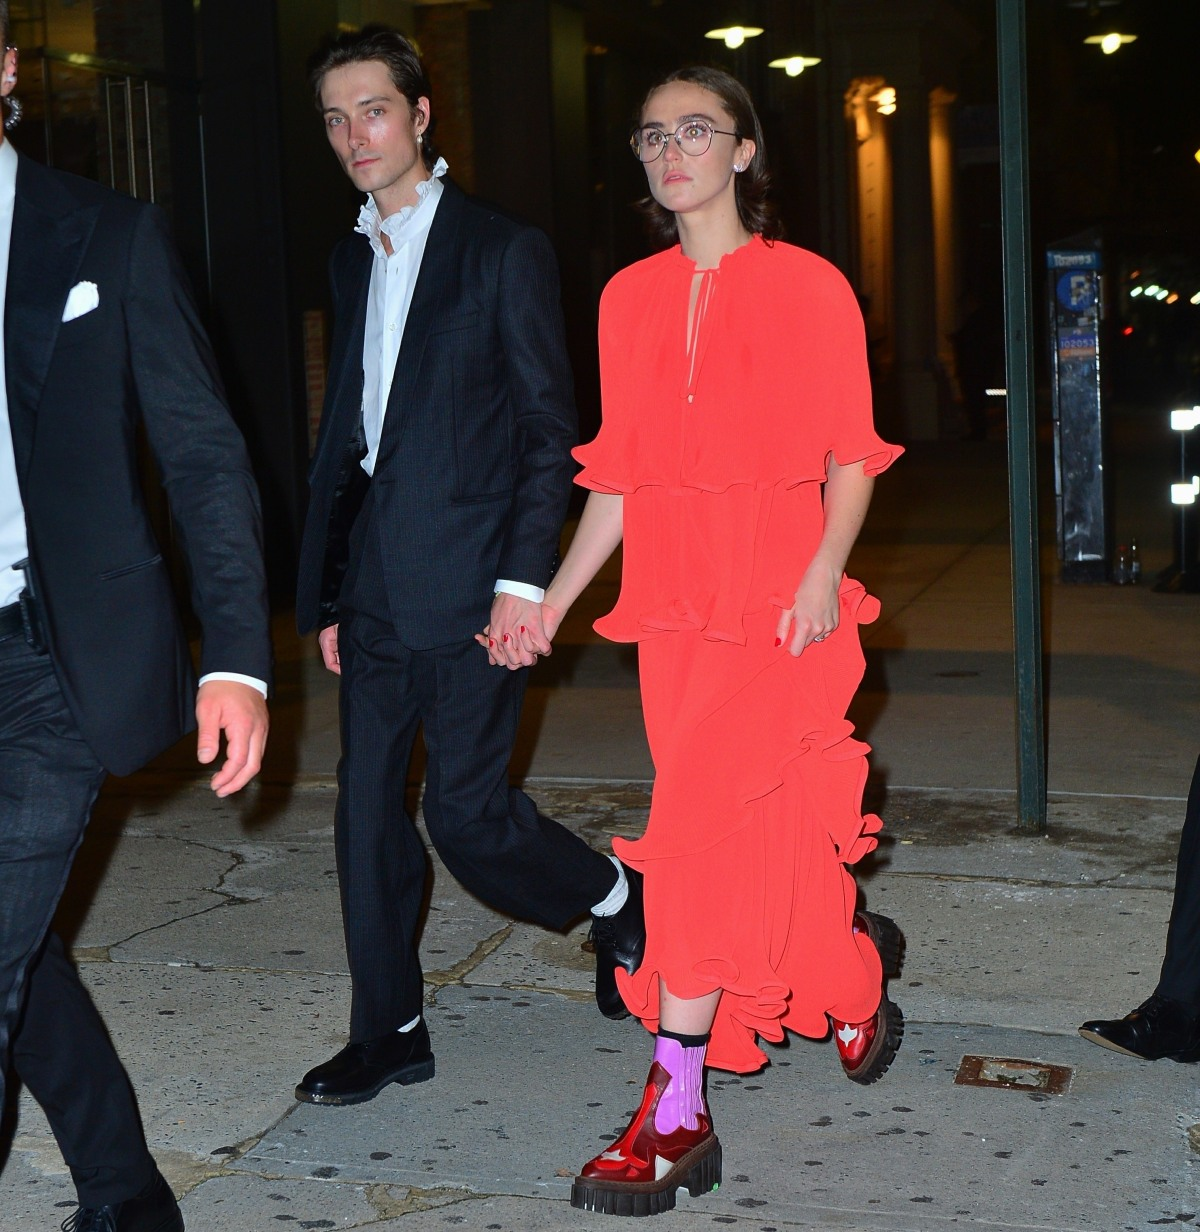 Kamala Harris' stepdaughter Ella Emhoff and her boyfriend Sam Hine leave Rihanna's Met Gala after-party  in NYC